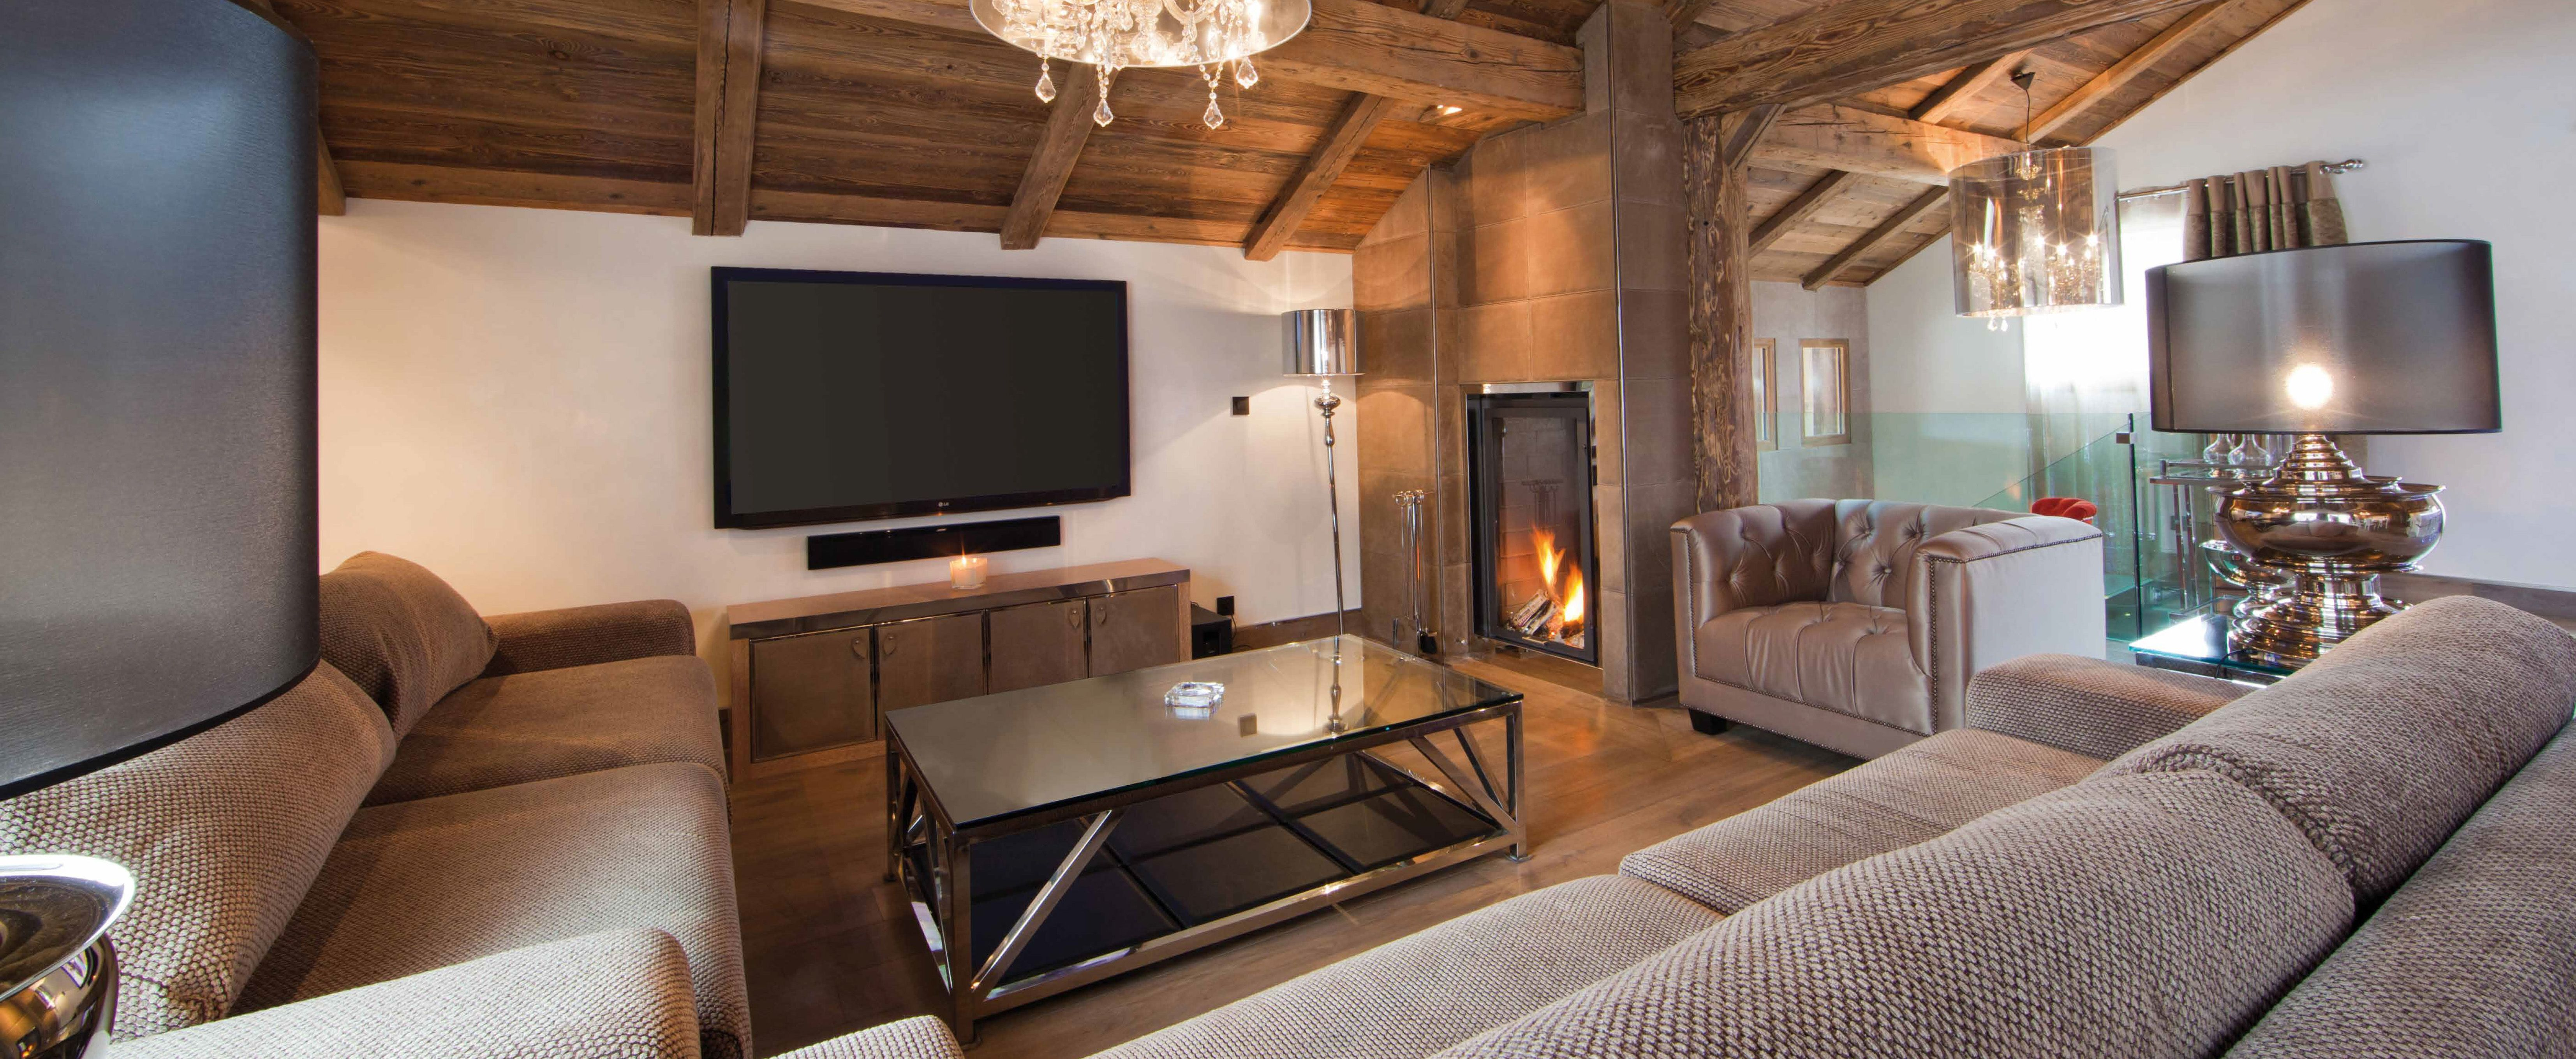 living room -sofa -chalet -luxury chalet -ikhome -construction ...